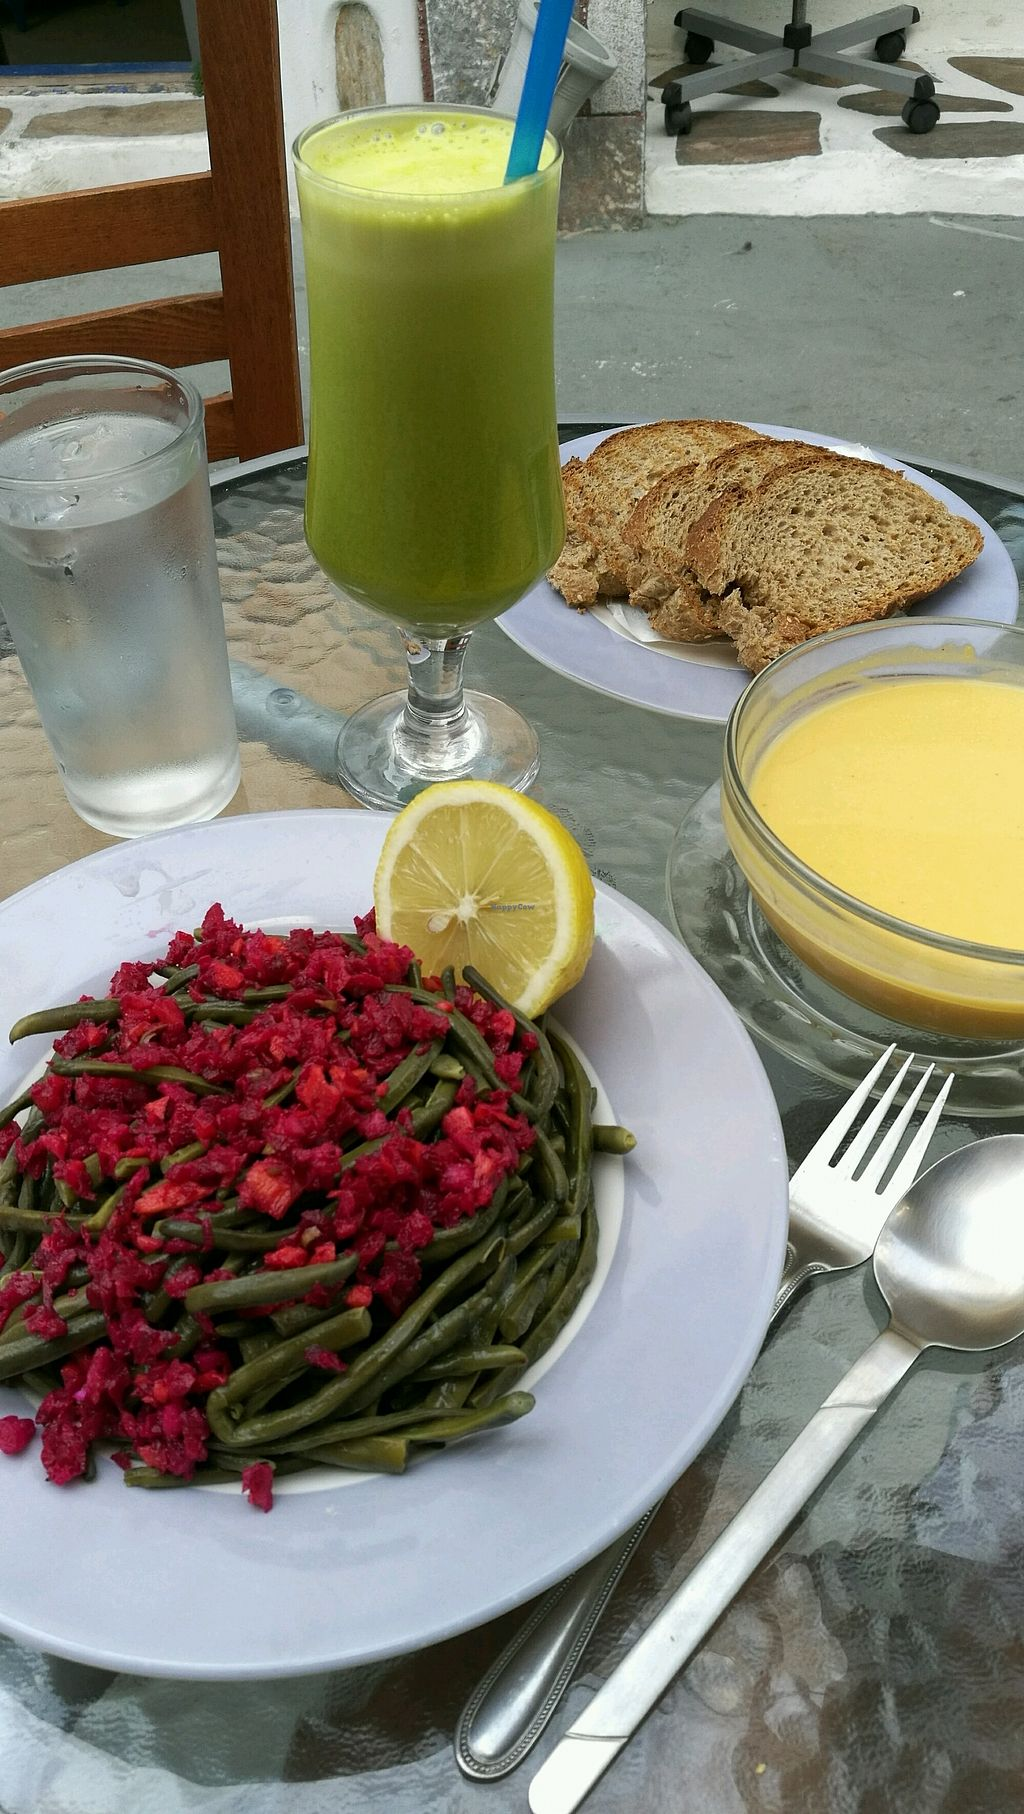 """Photo of Kelari  by <a href=""""/members/profile/beat"""">beat</a> <br/>Green juice, beans from Maria's garden and a pumpkin soup <br/> September 11, 2017  - <a href='/contact/abuse/image/100440/303179'>Report</a>"""